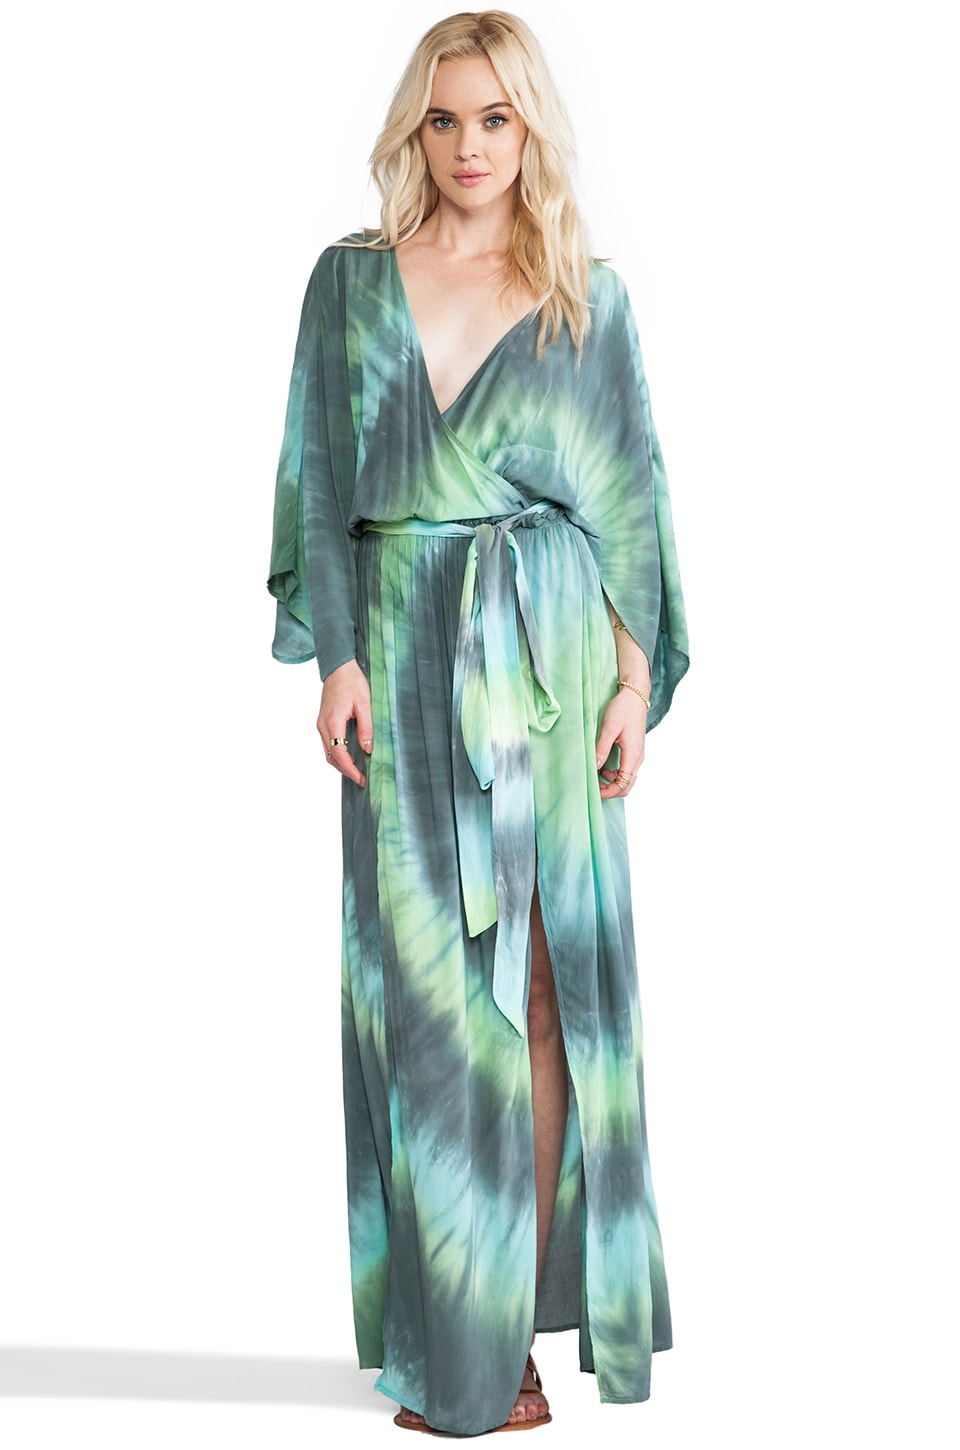 Blu Moon Angel Sleeve Maxi Dress in Tides